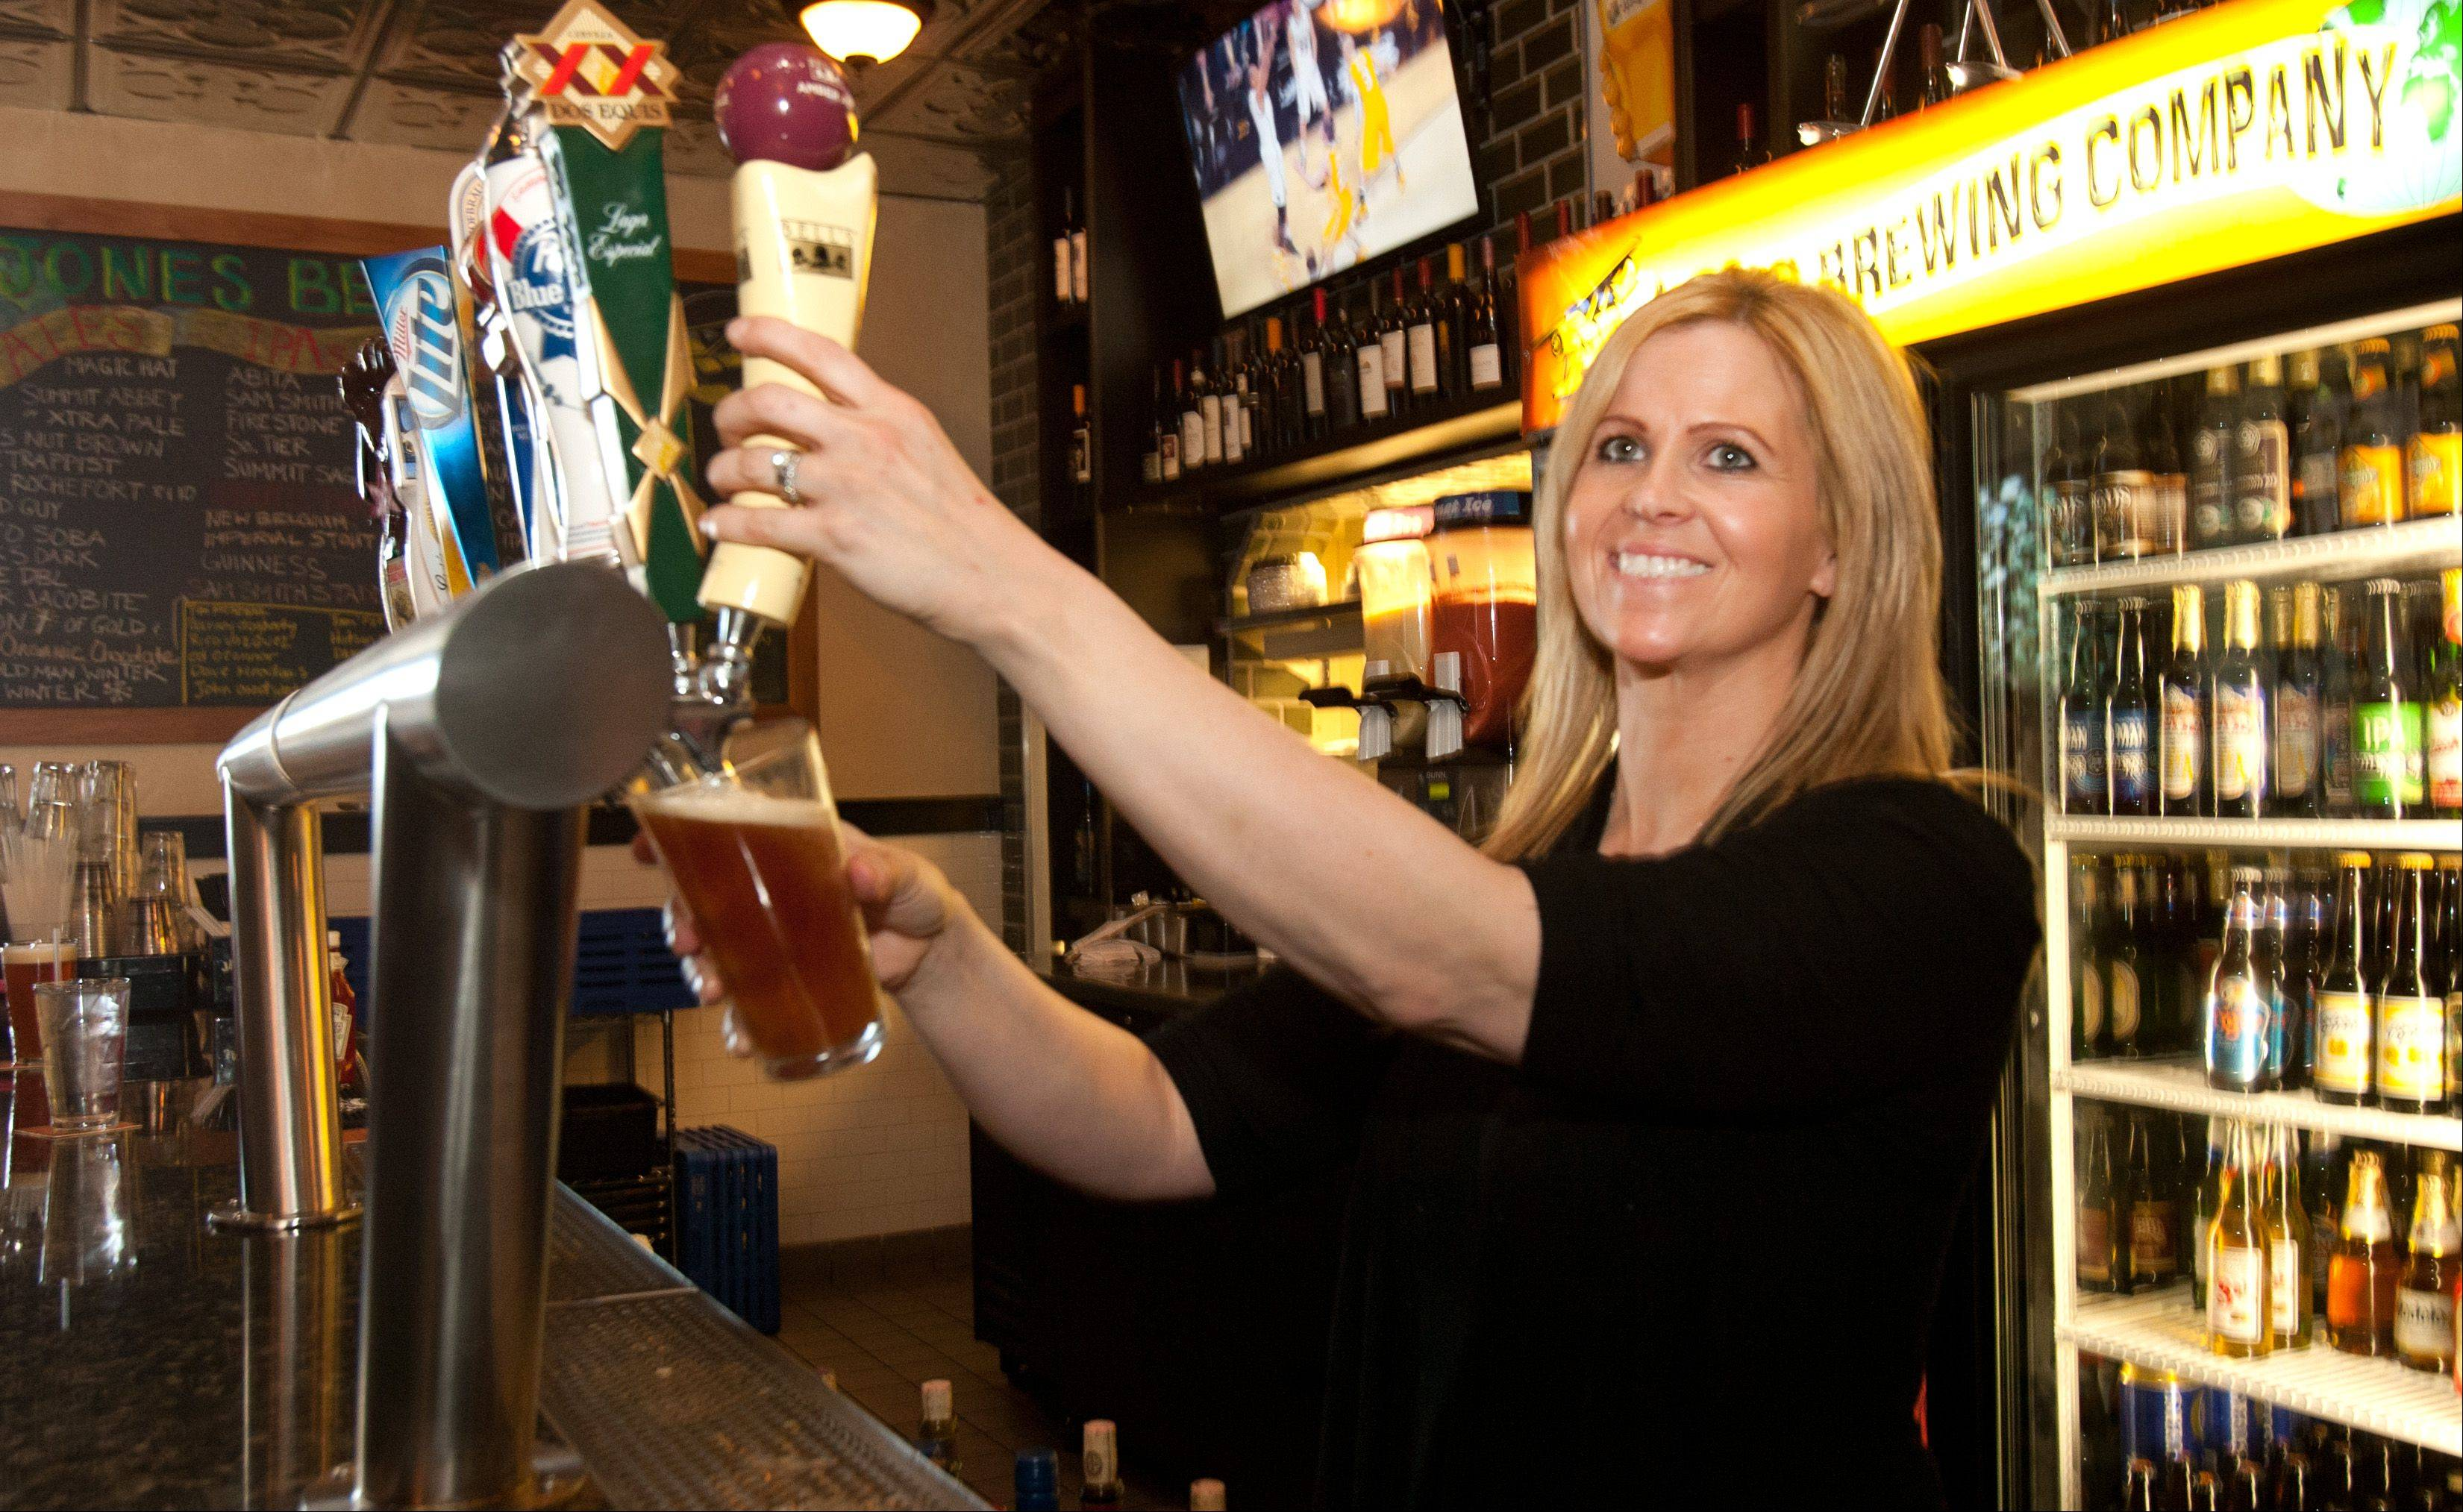 Amber Freeland serves beer at HB Jones in Elmhurst.